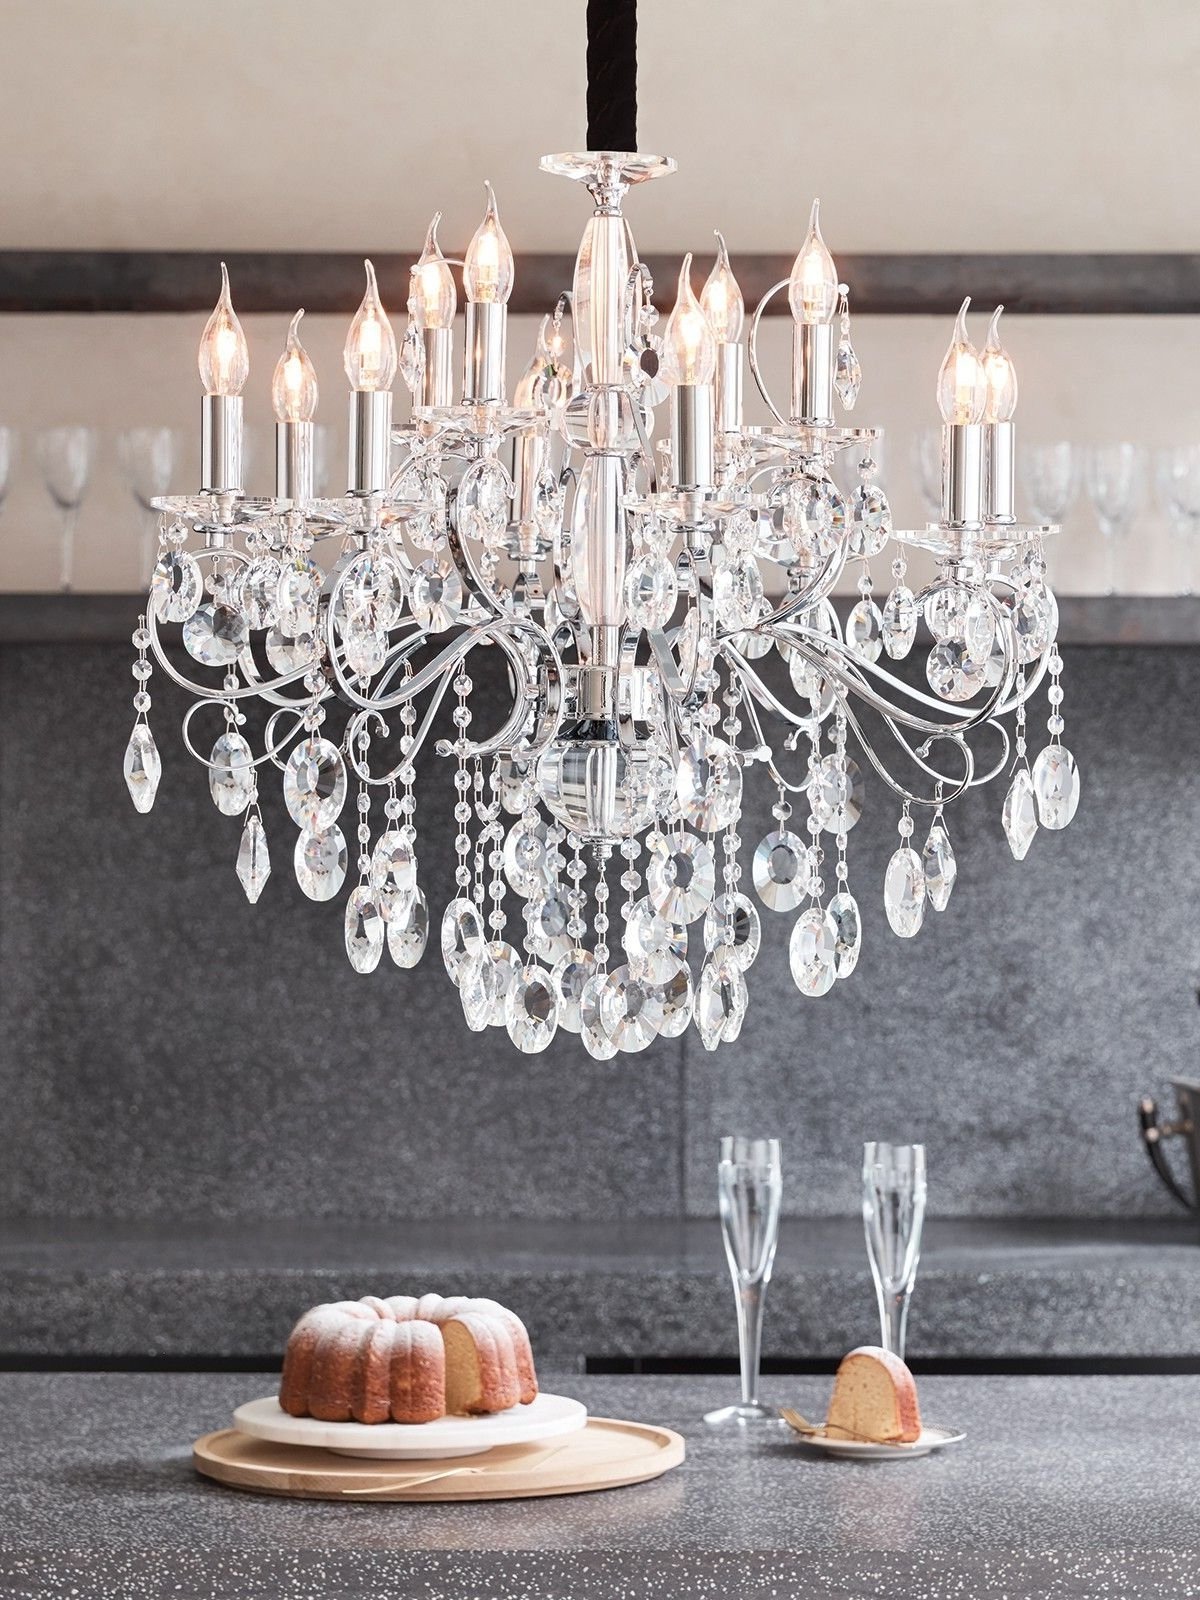 2019 Madeleine 12 Light Egyptian Crystal Chandelier In Chrome (View 2 of 20)